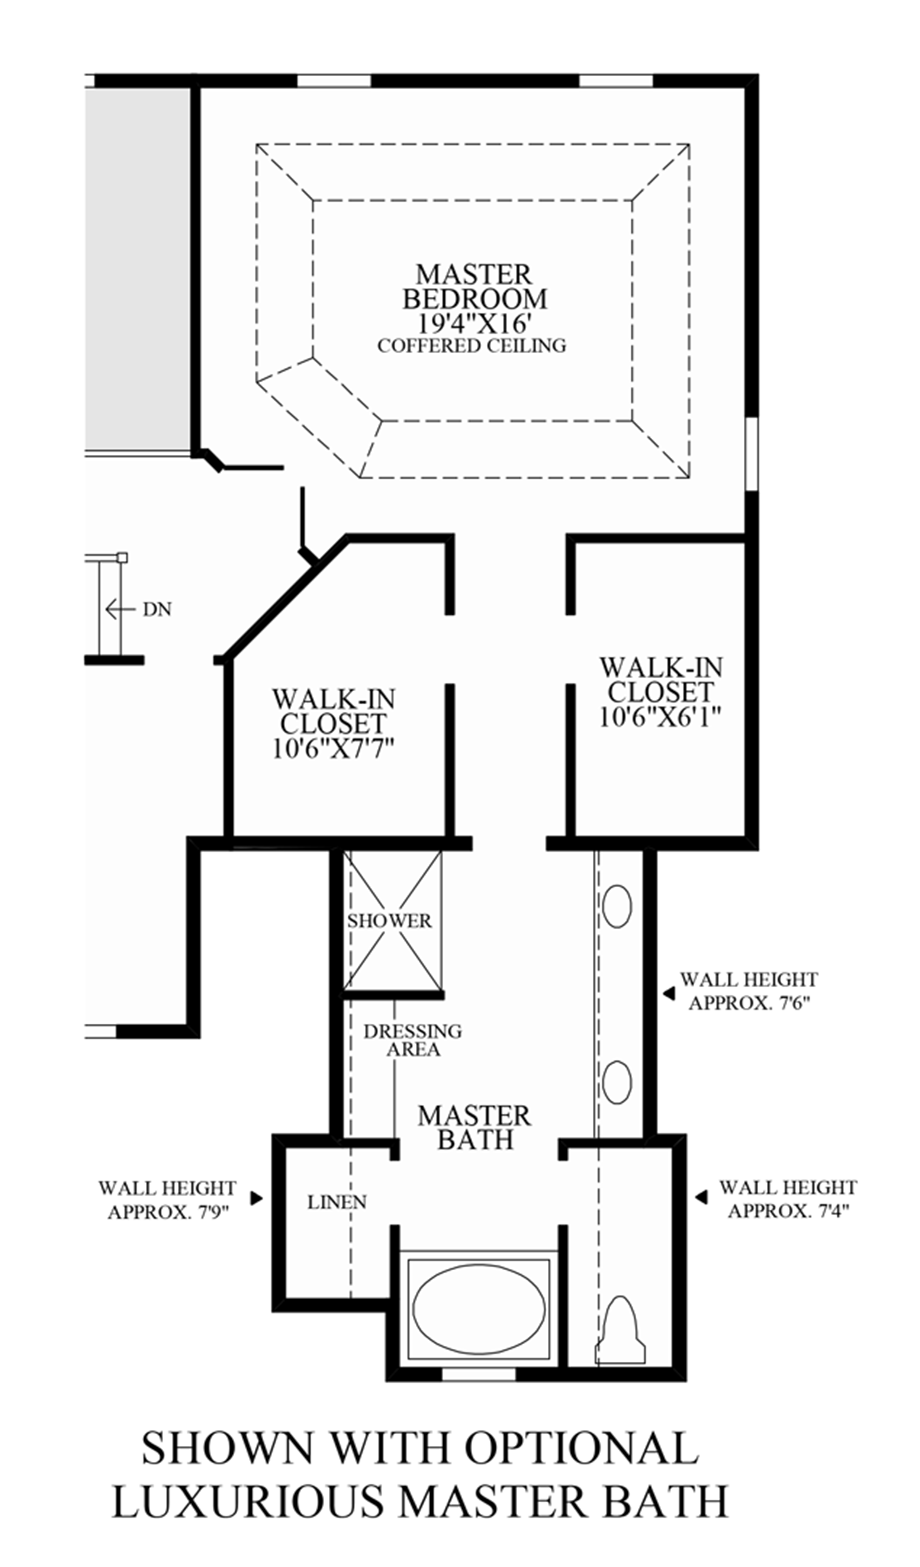 luxury master bathroom floor plans. Black Bedroom Furniture Sets. Home Design Ideas